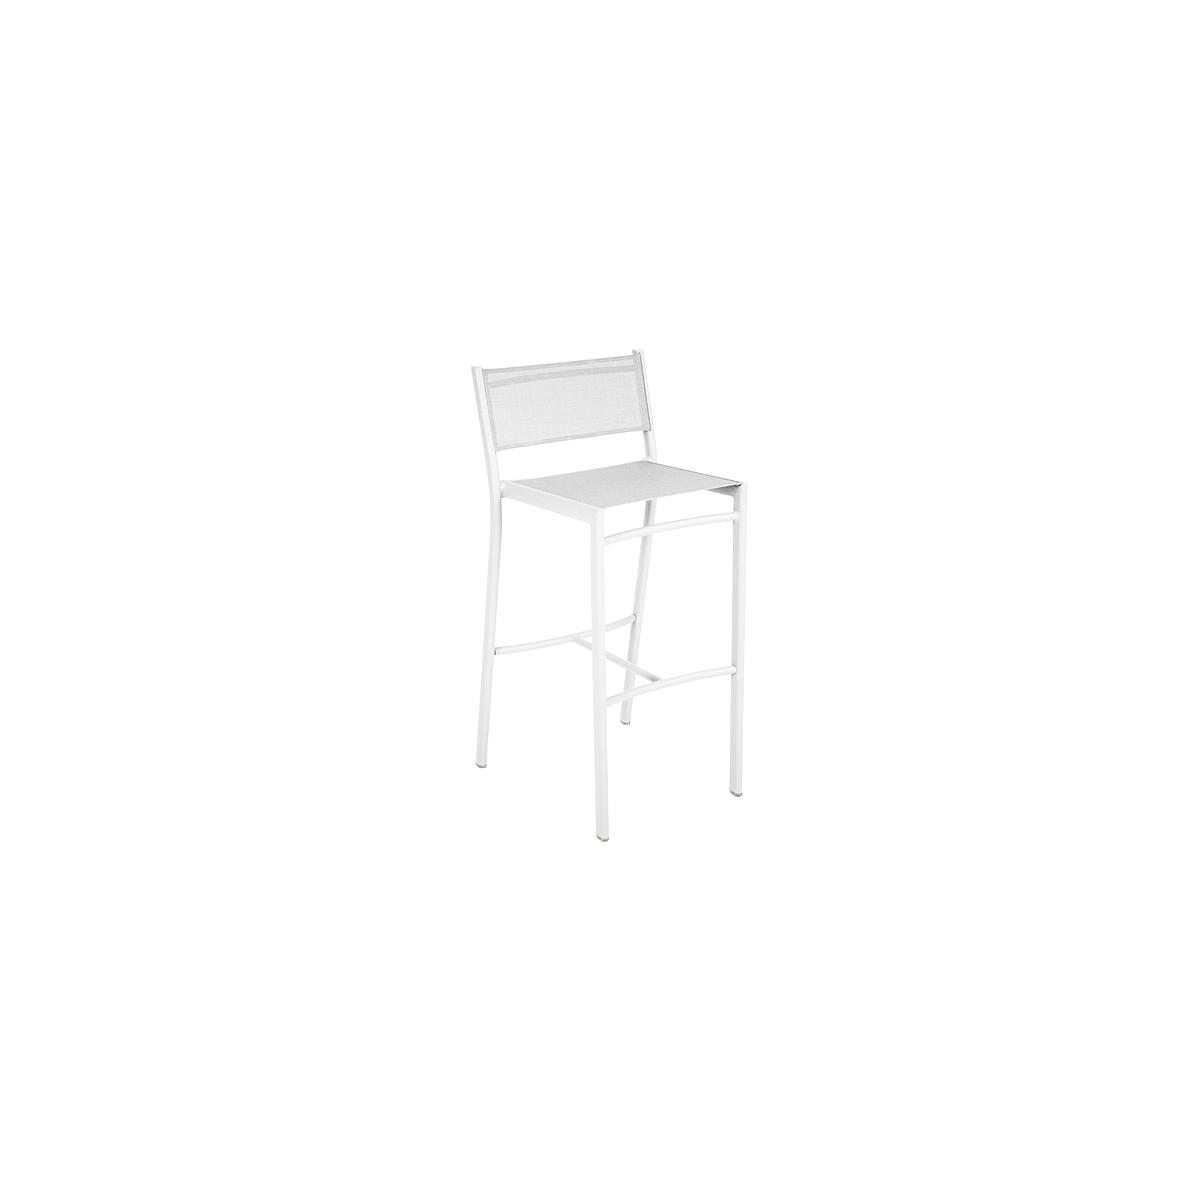 COSTA by Fermob Tabouret haut blanc coton